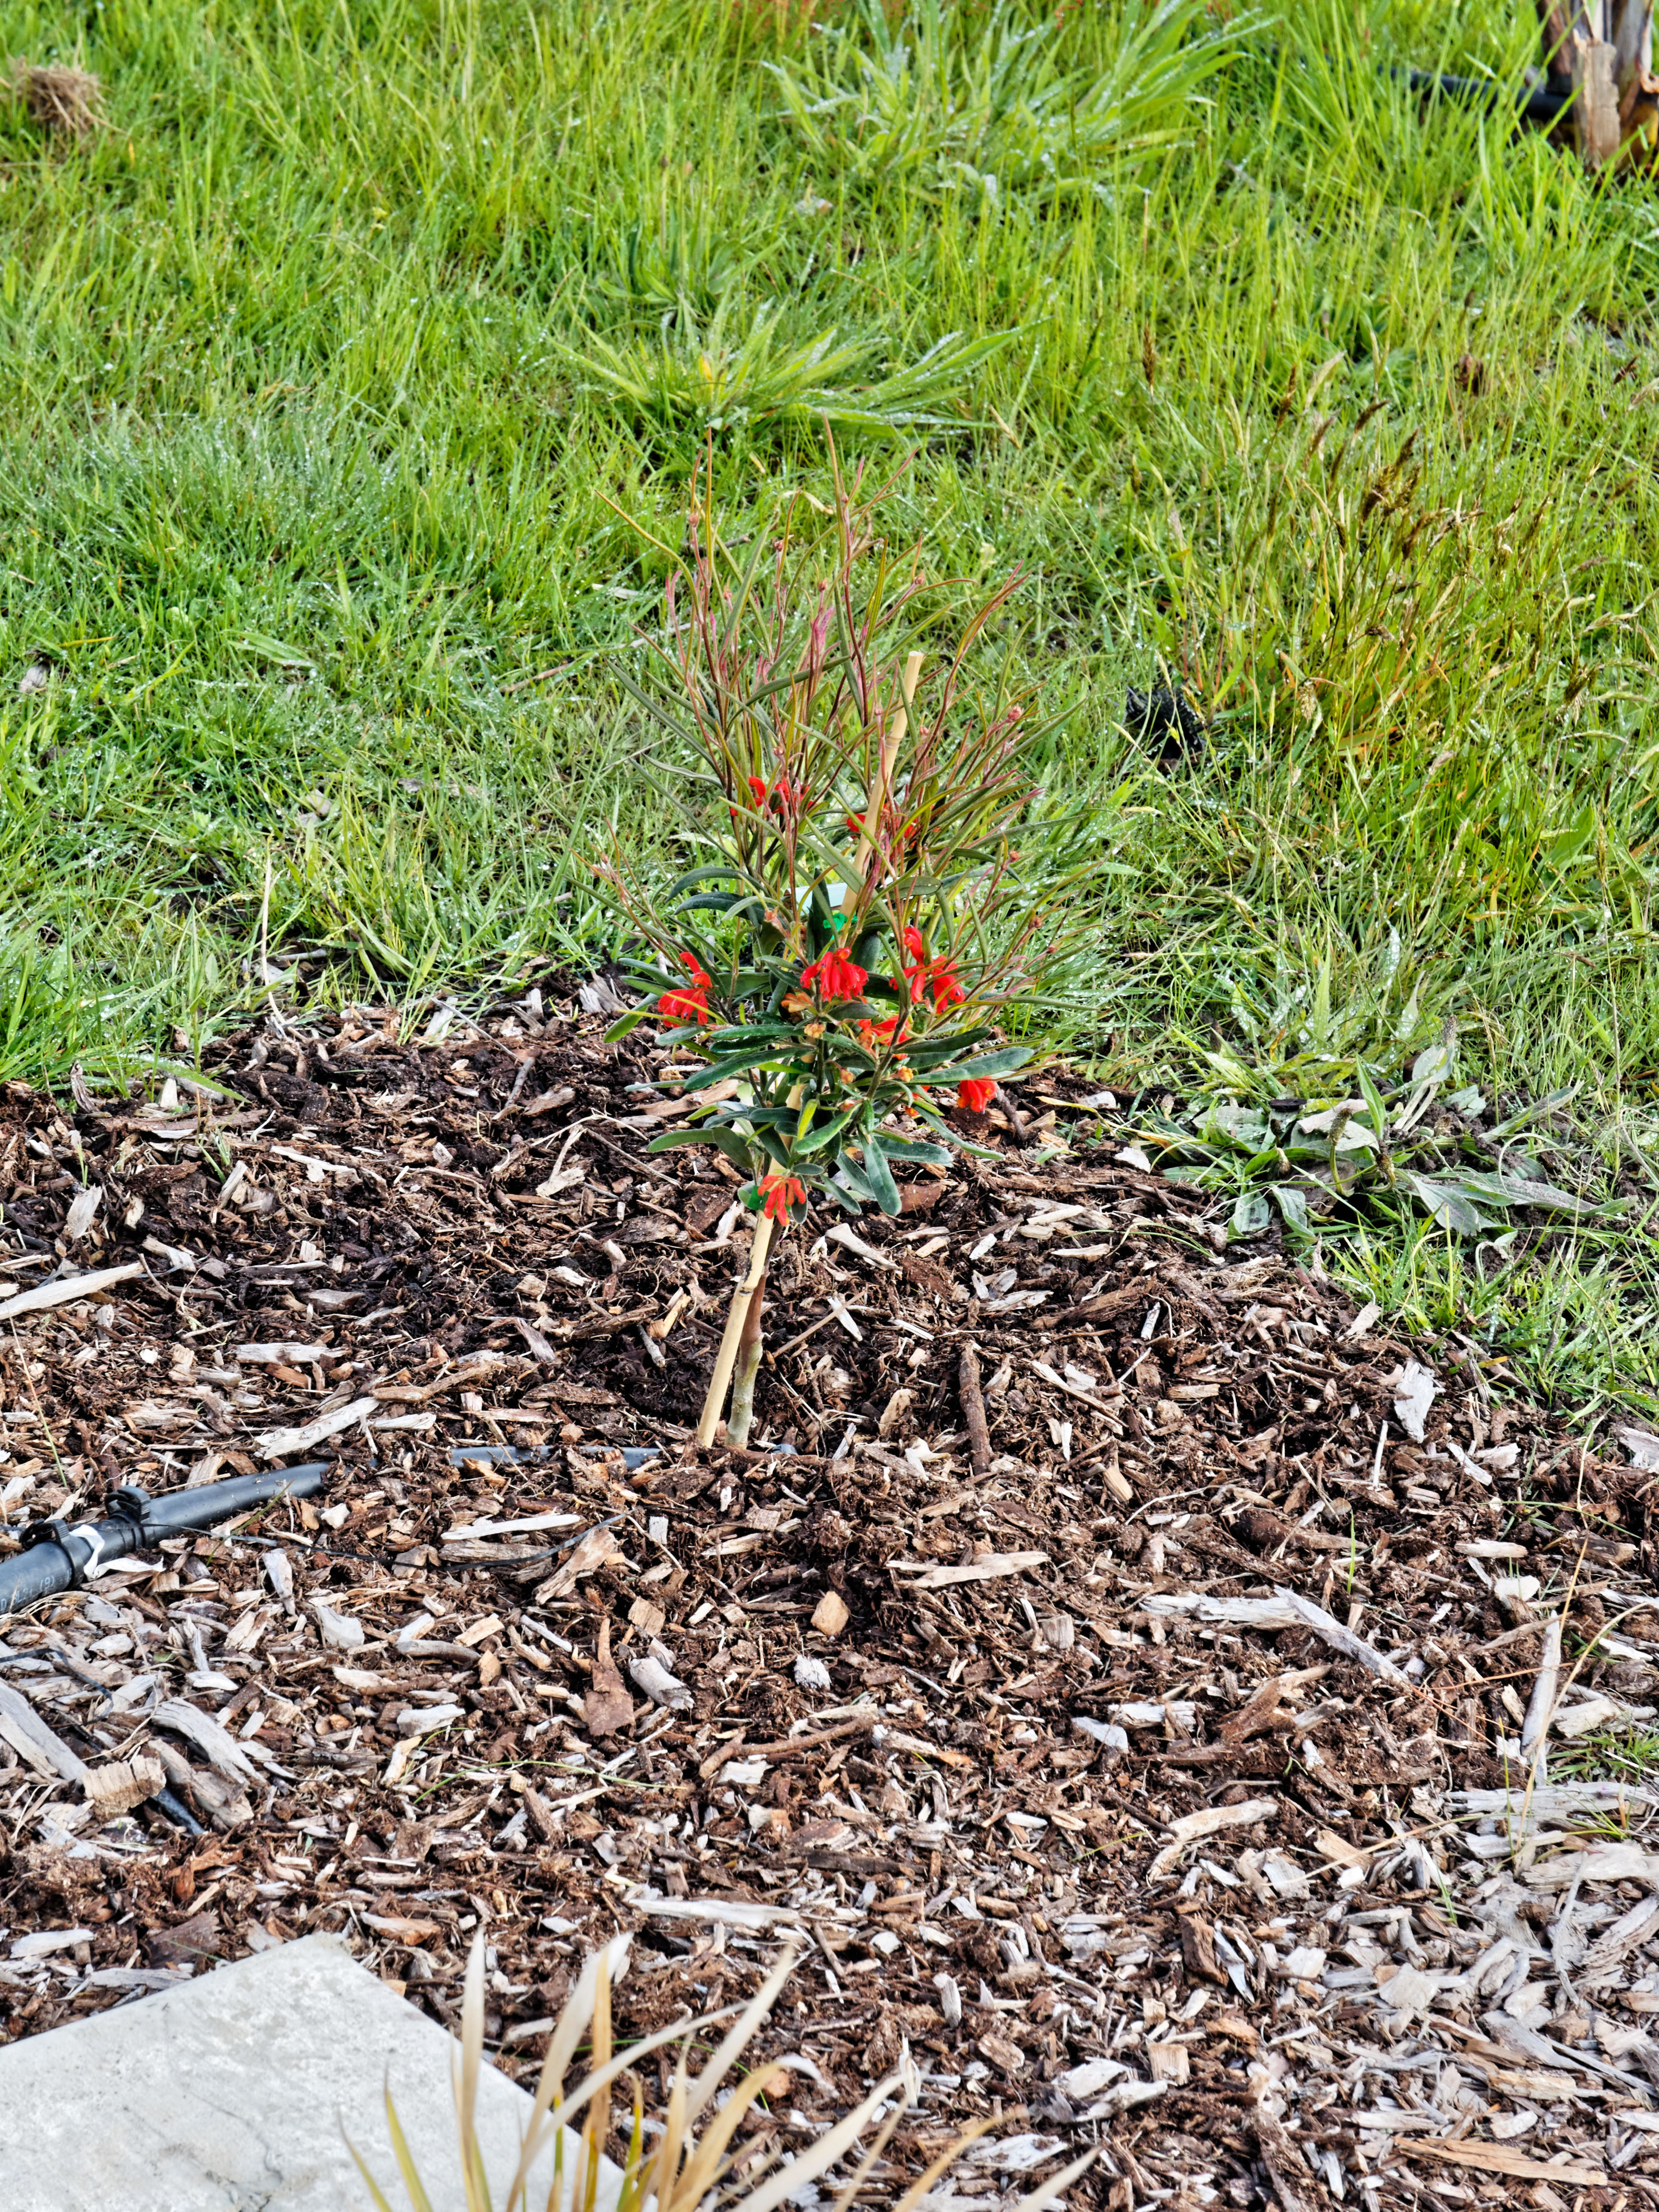 This should be Grevillea-bronwenae.jpeg.  Is it missing?